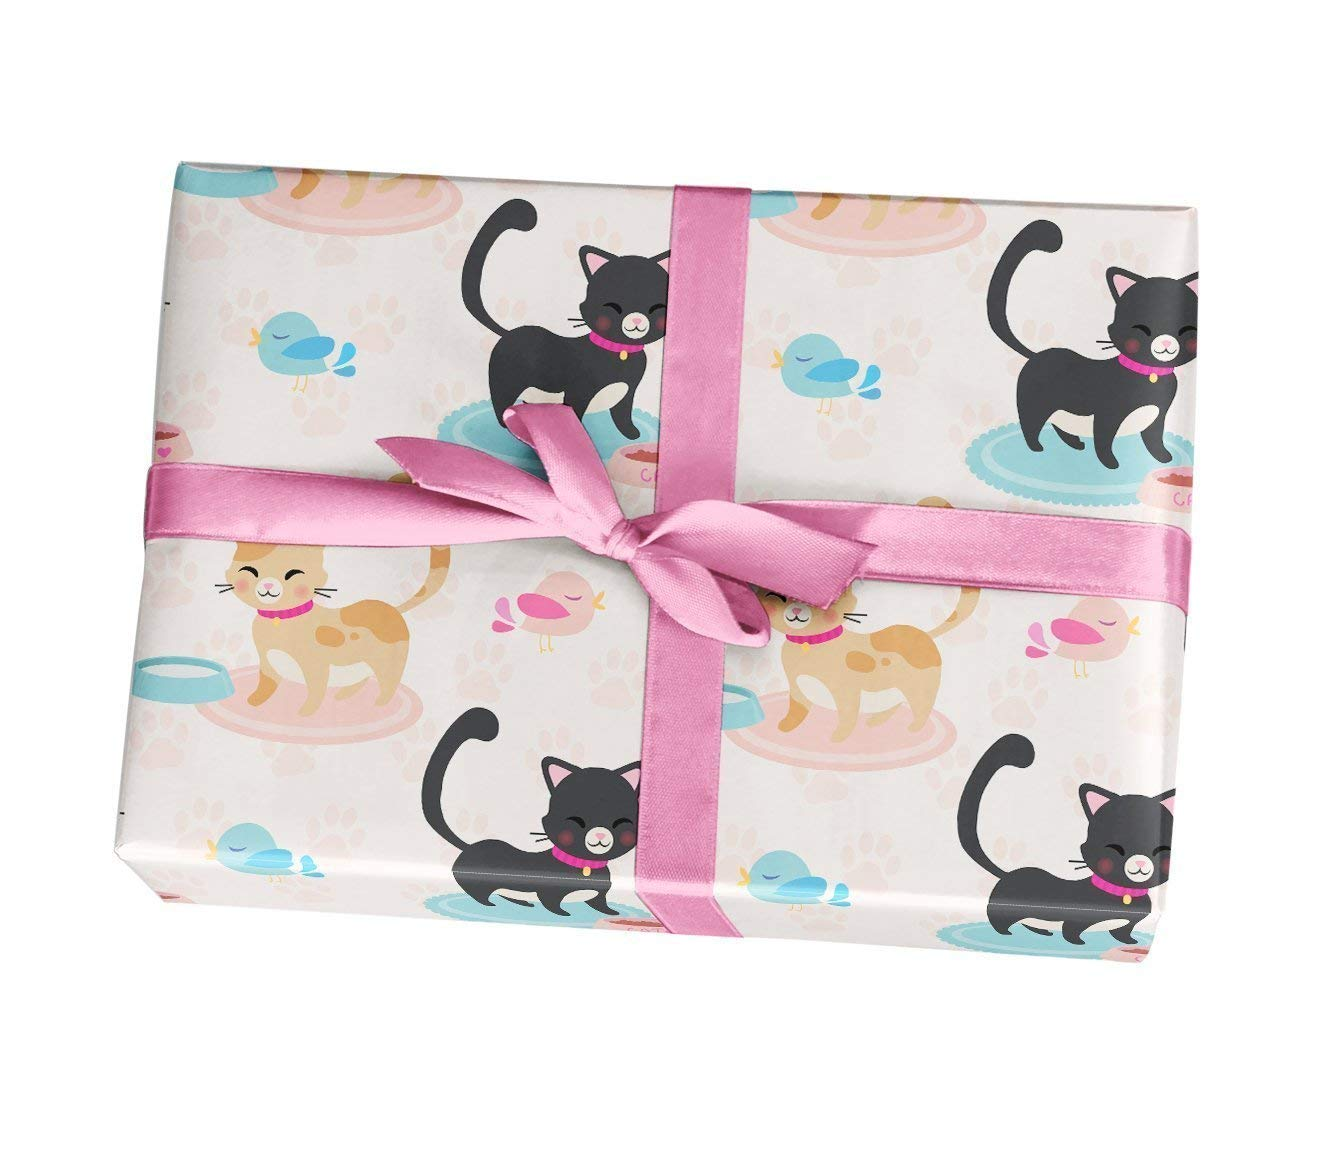 Cat wrapping paper sheets - 10 pack of 11x17 wrapping paper sheets - For birthday party, baby shower, supplies, decorations - Made in the USA